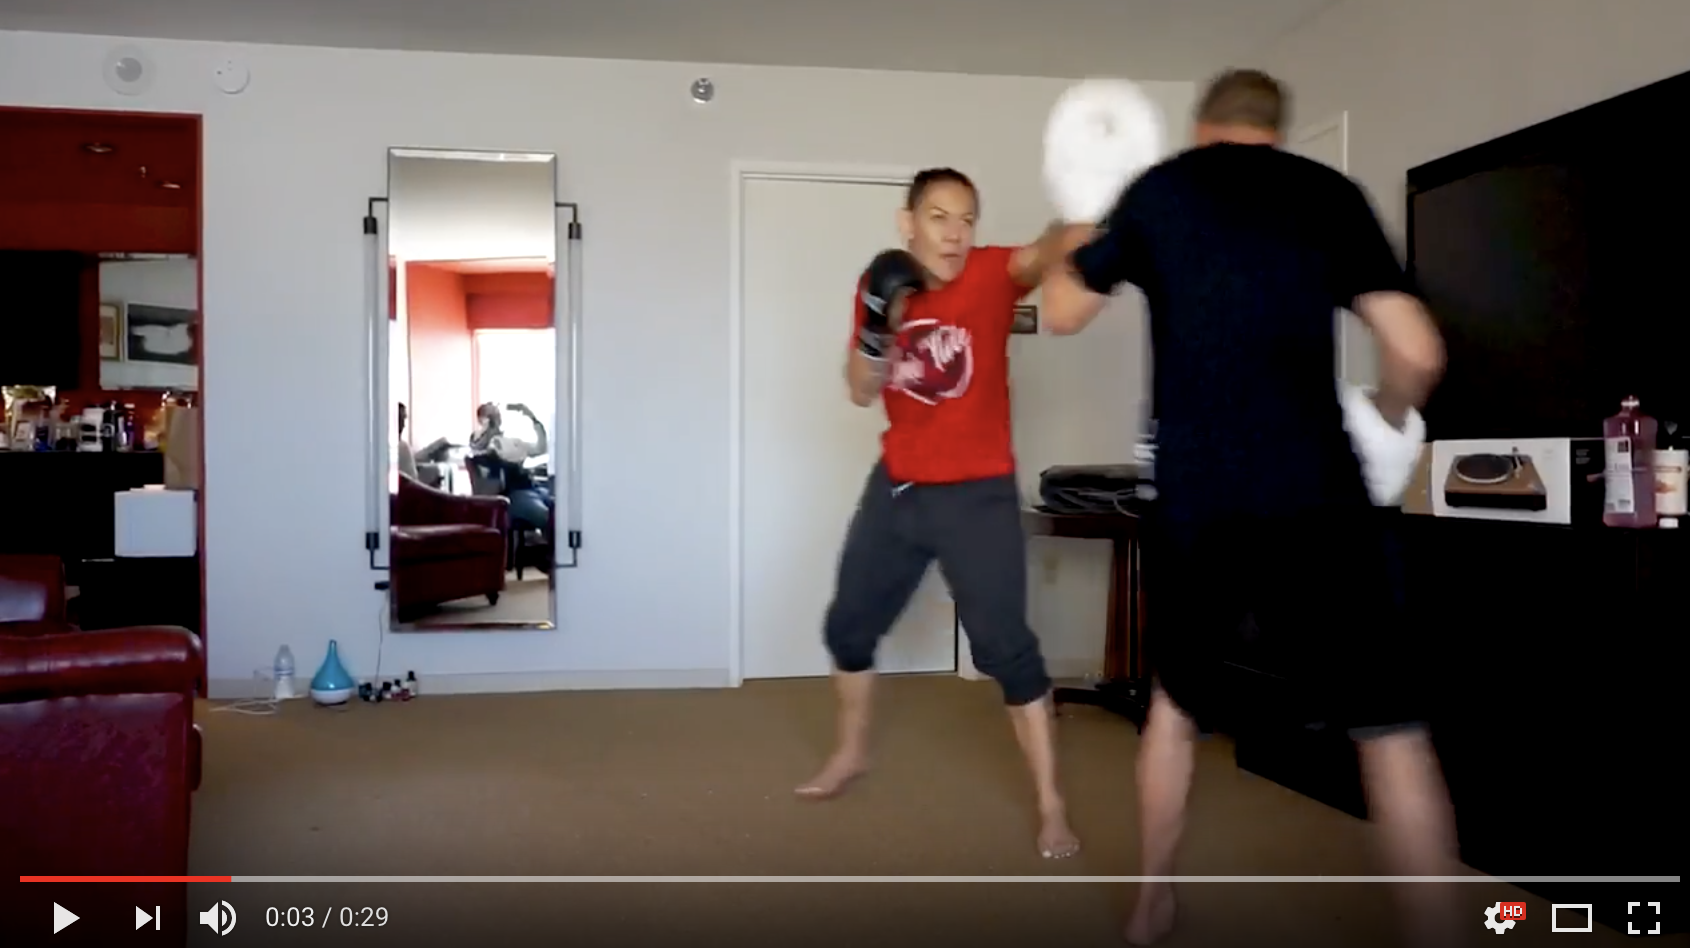 LEAKED VIDEO FOOTAGE: Watch video of Cris Cyborg hitting pads the